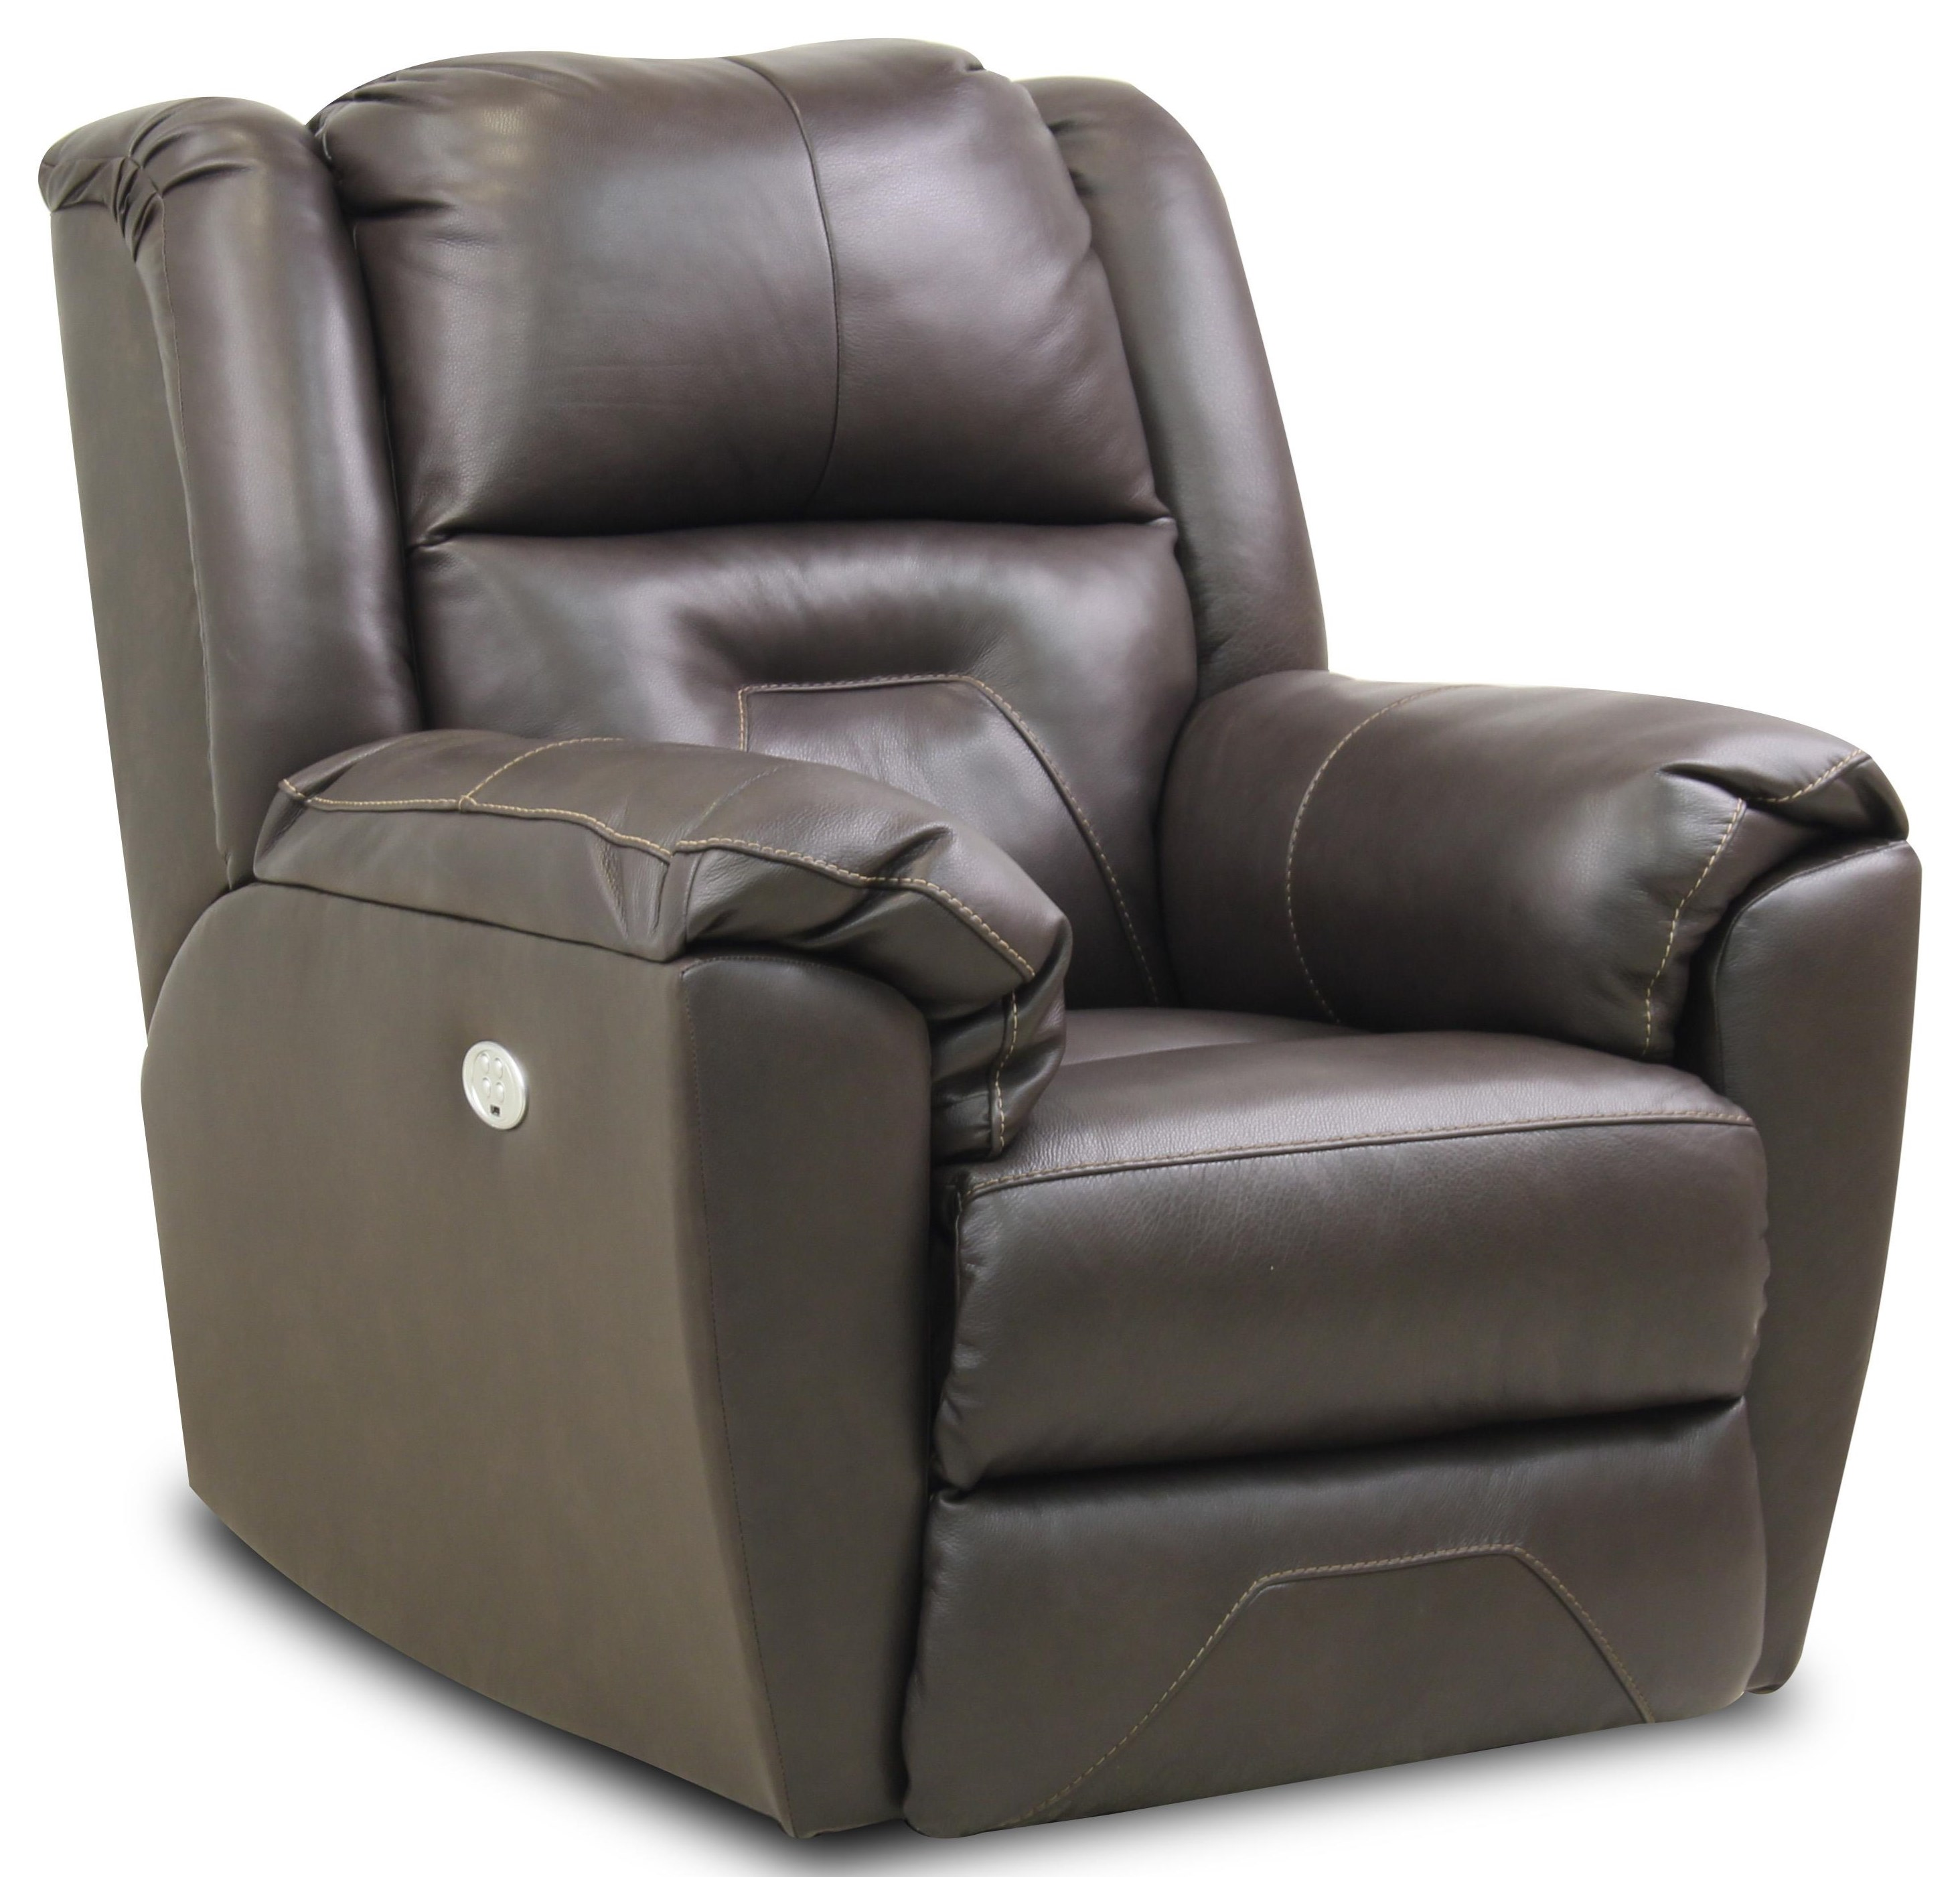 Pandora Pandora Wall Recliner with Power Headrest by Southern Motion at Ruby Gordon Home